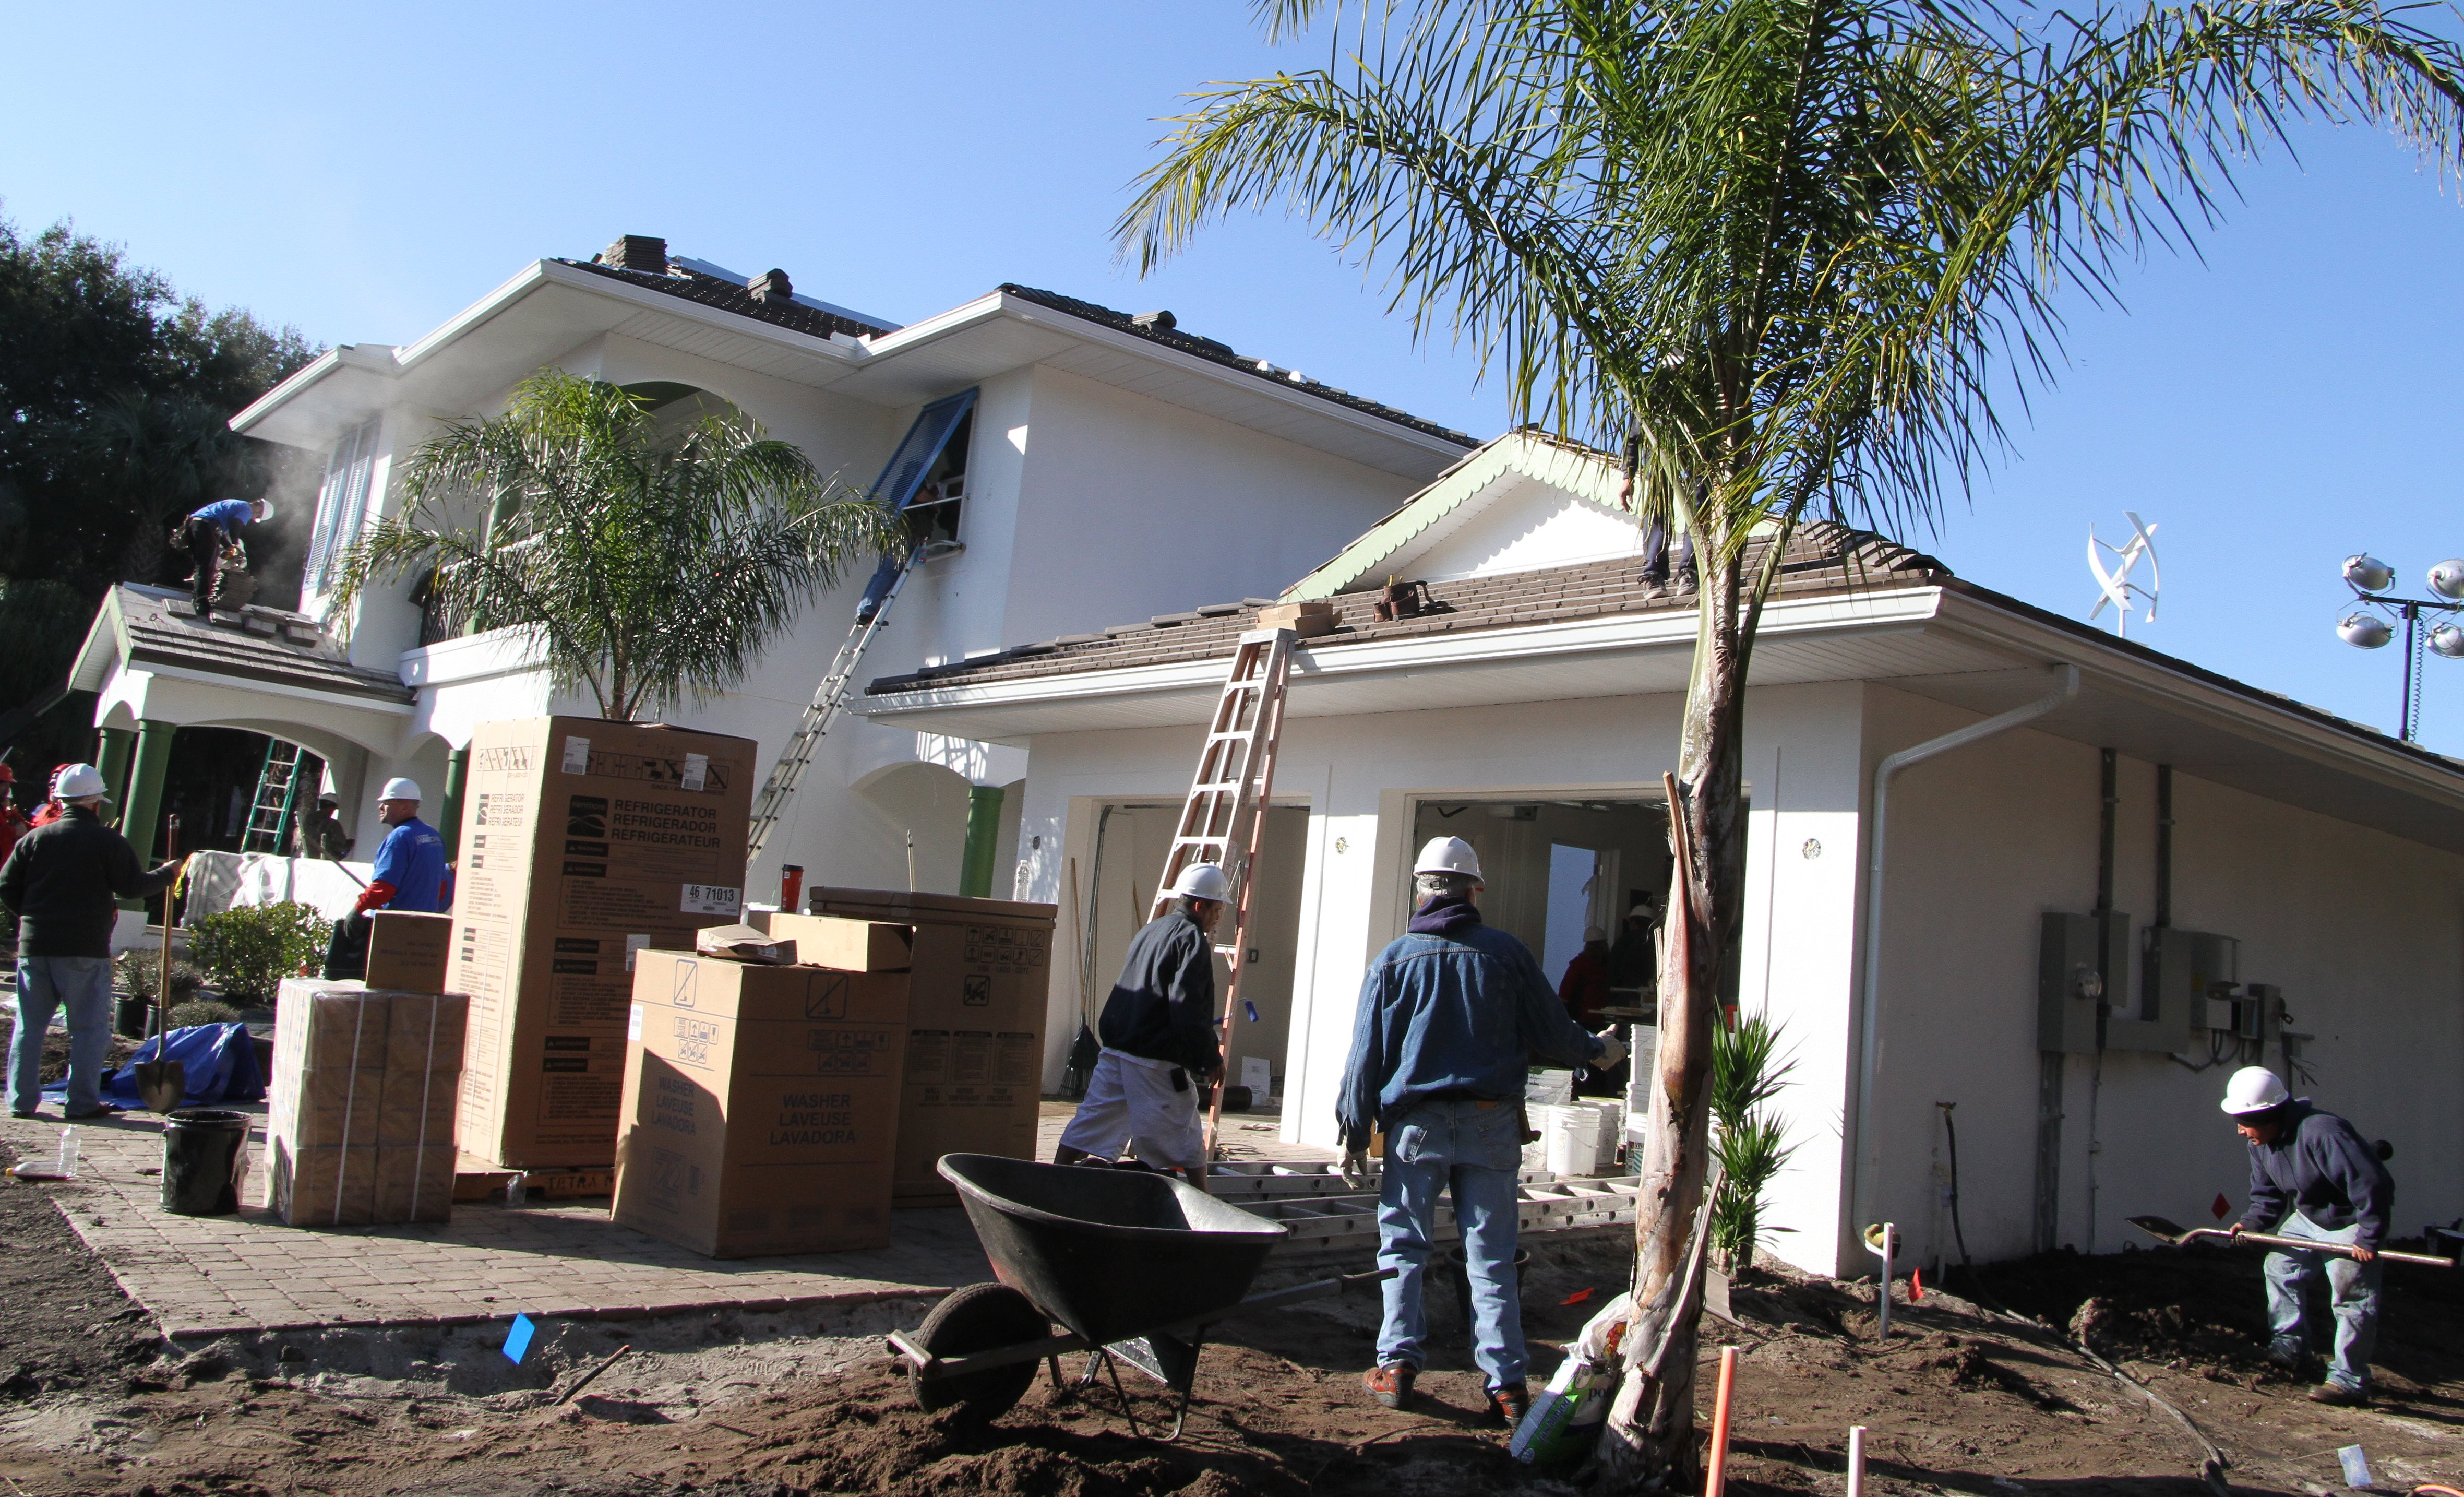 Decision to sell extreme makeover home not an easy one for trisha.